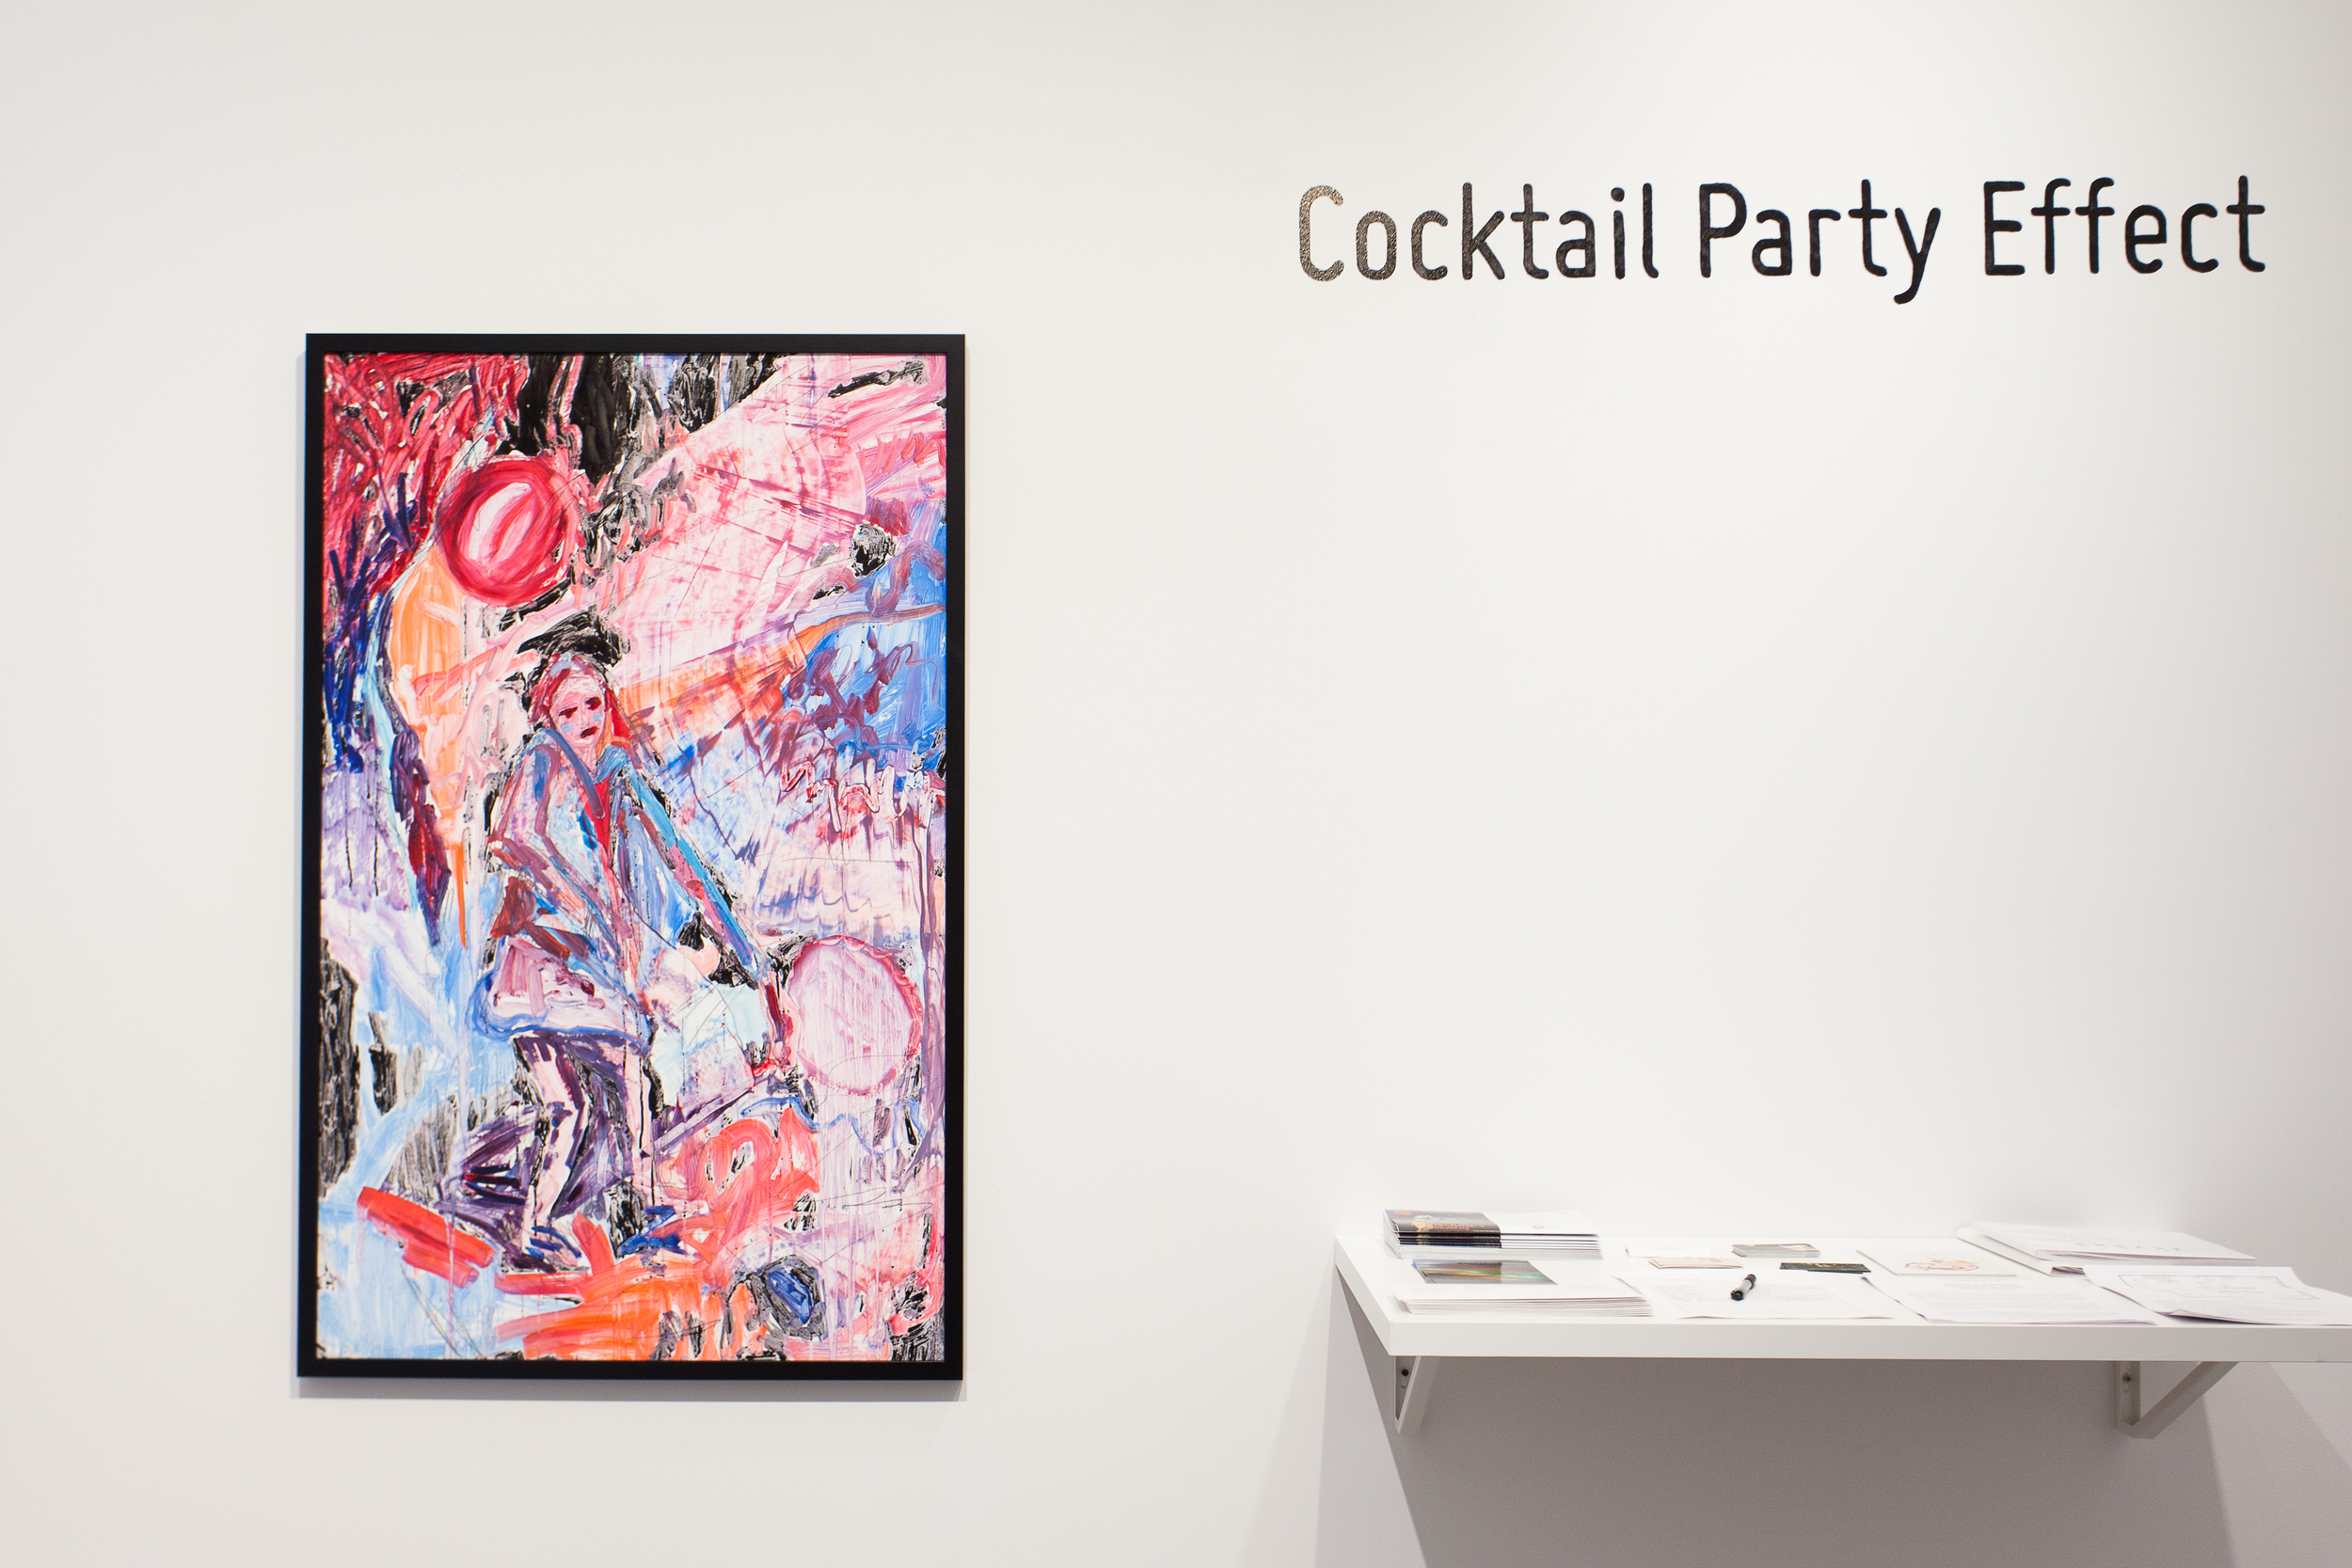 2016 Embark Gallery Cocktail Party Effect_MG_9466-2_Mido Lee.jpg